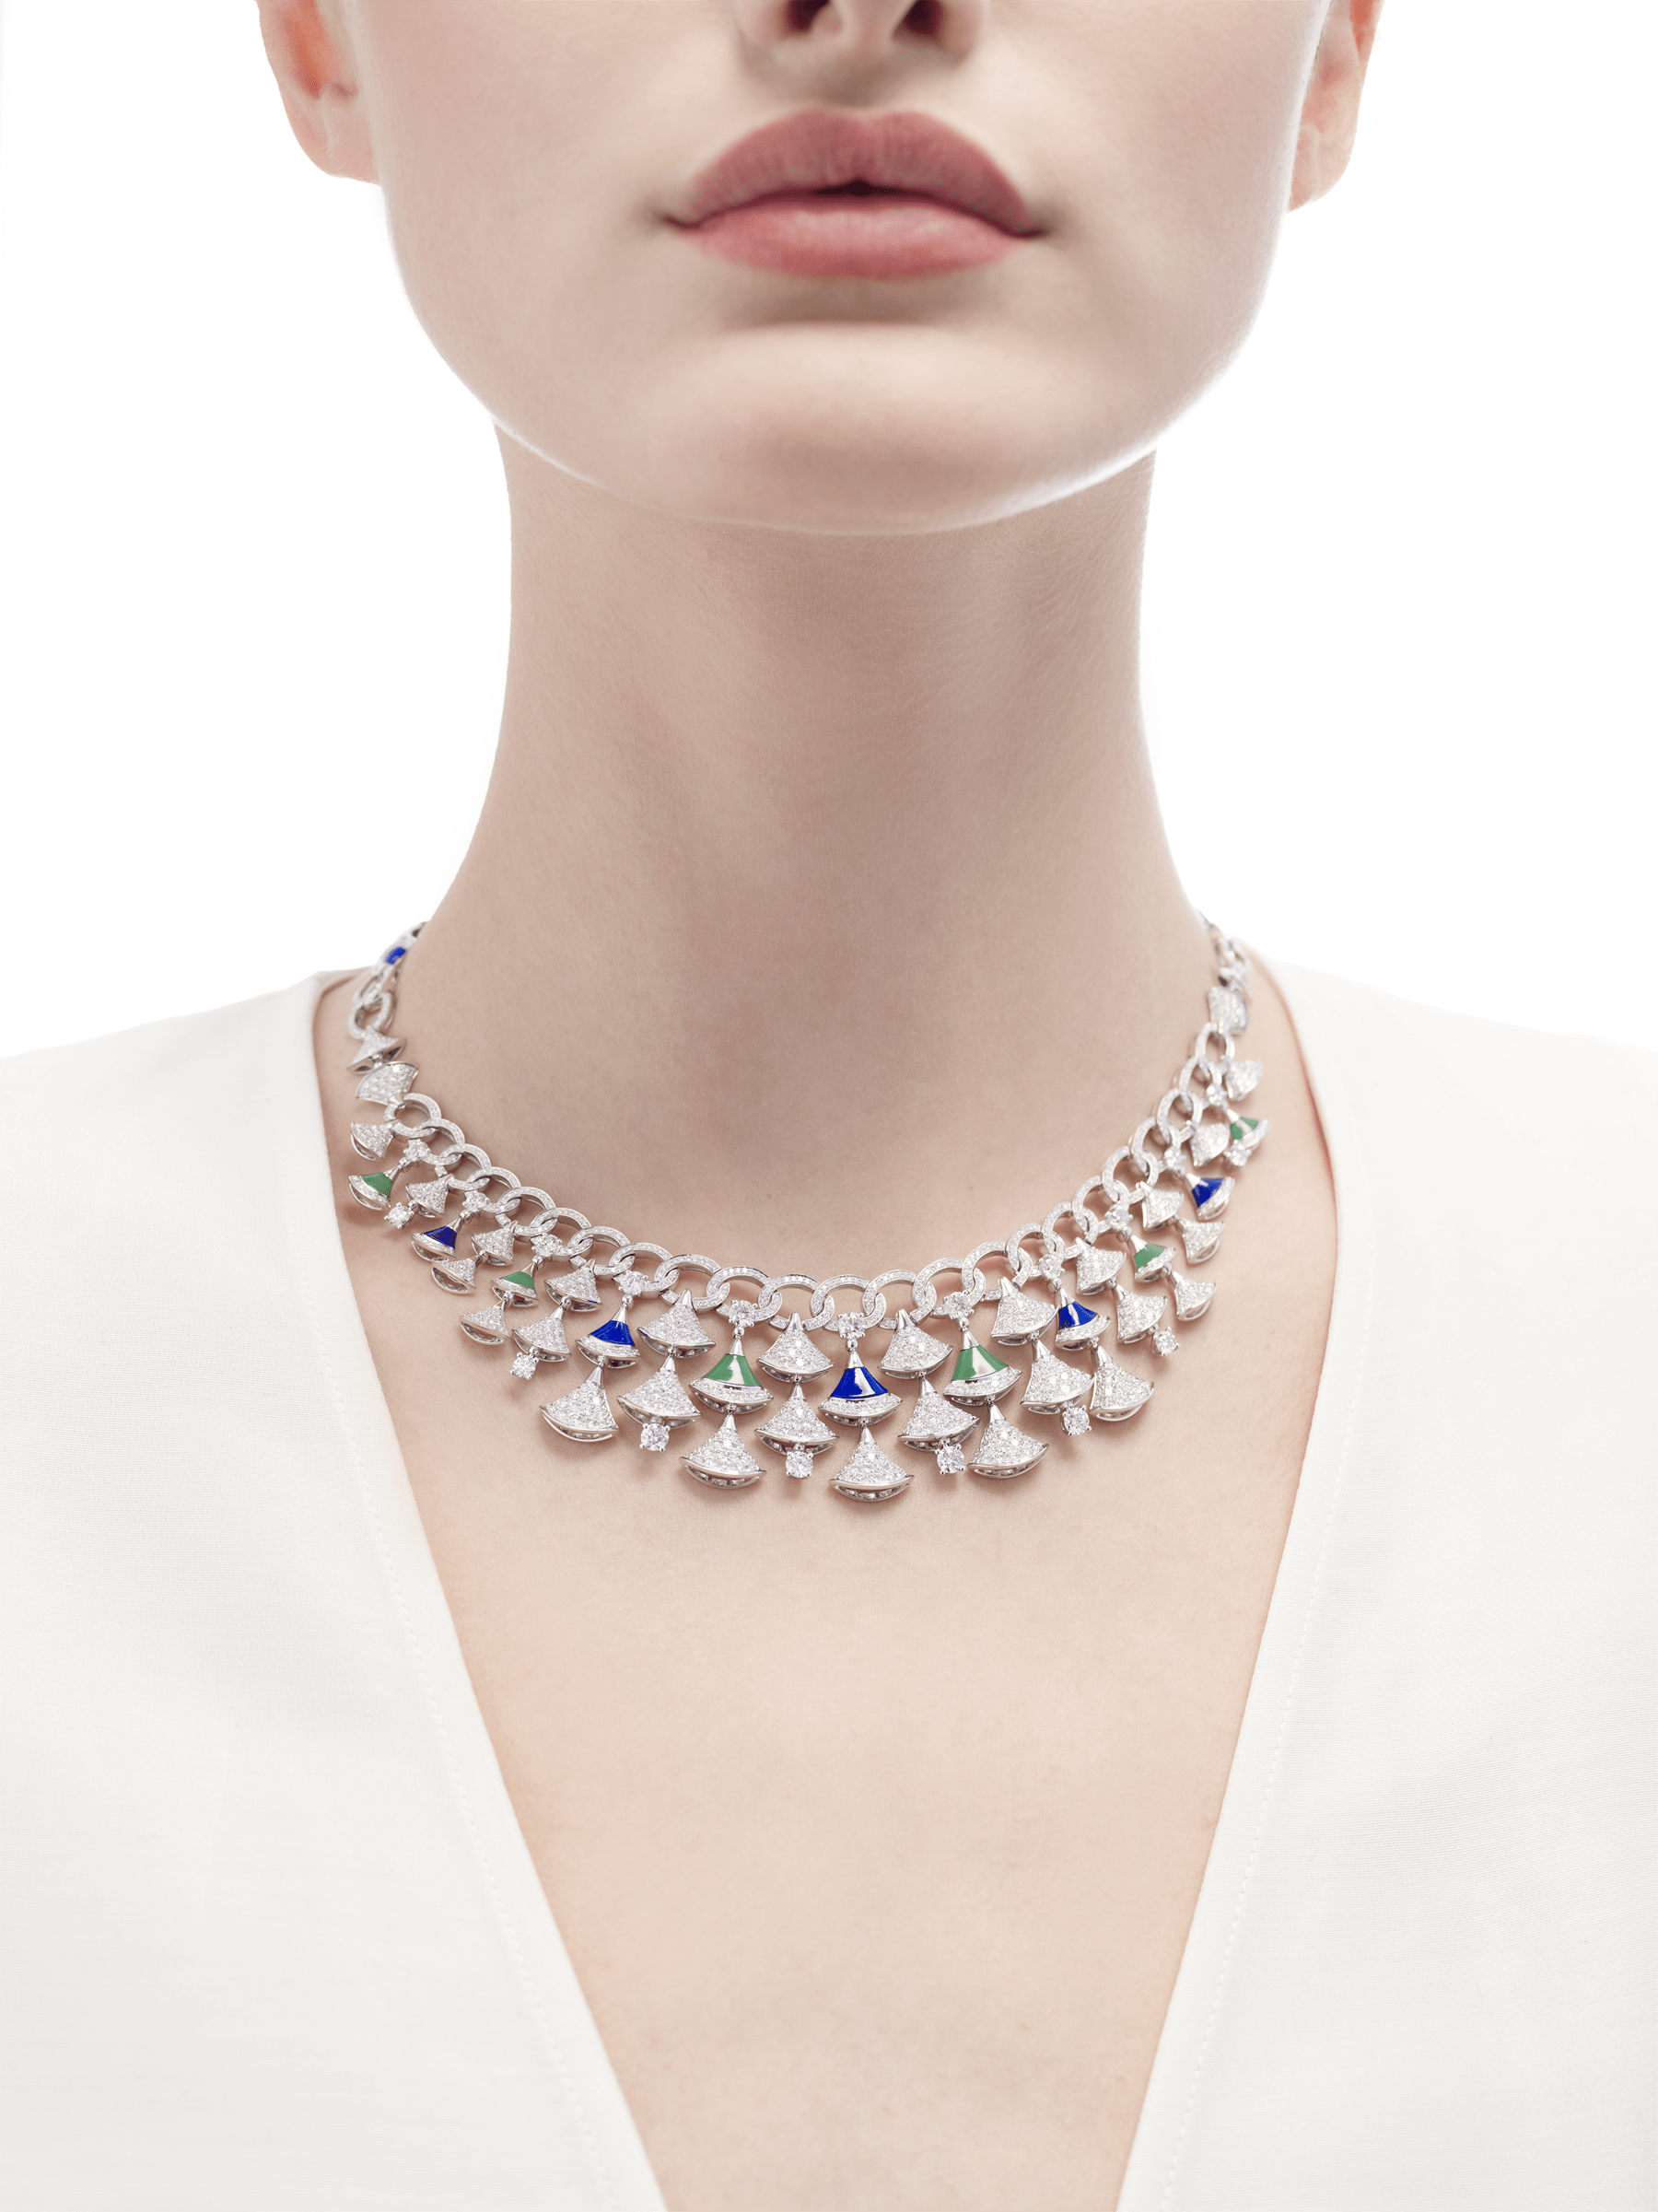 DIVAS' DREAM necklace in 18 kt white gold set with lapis lazuli and chrysoprase elements and pavè diamonds (12.20 ct). 354095 image 2